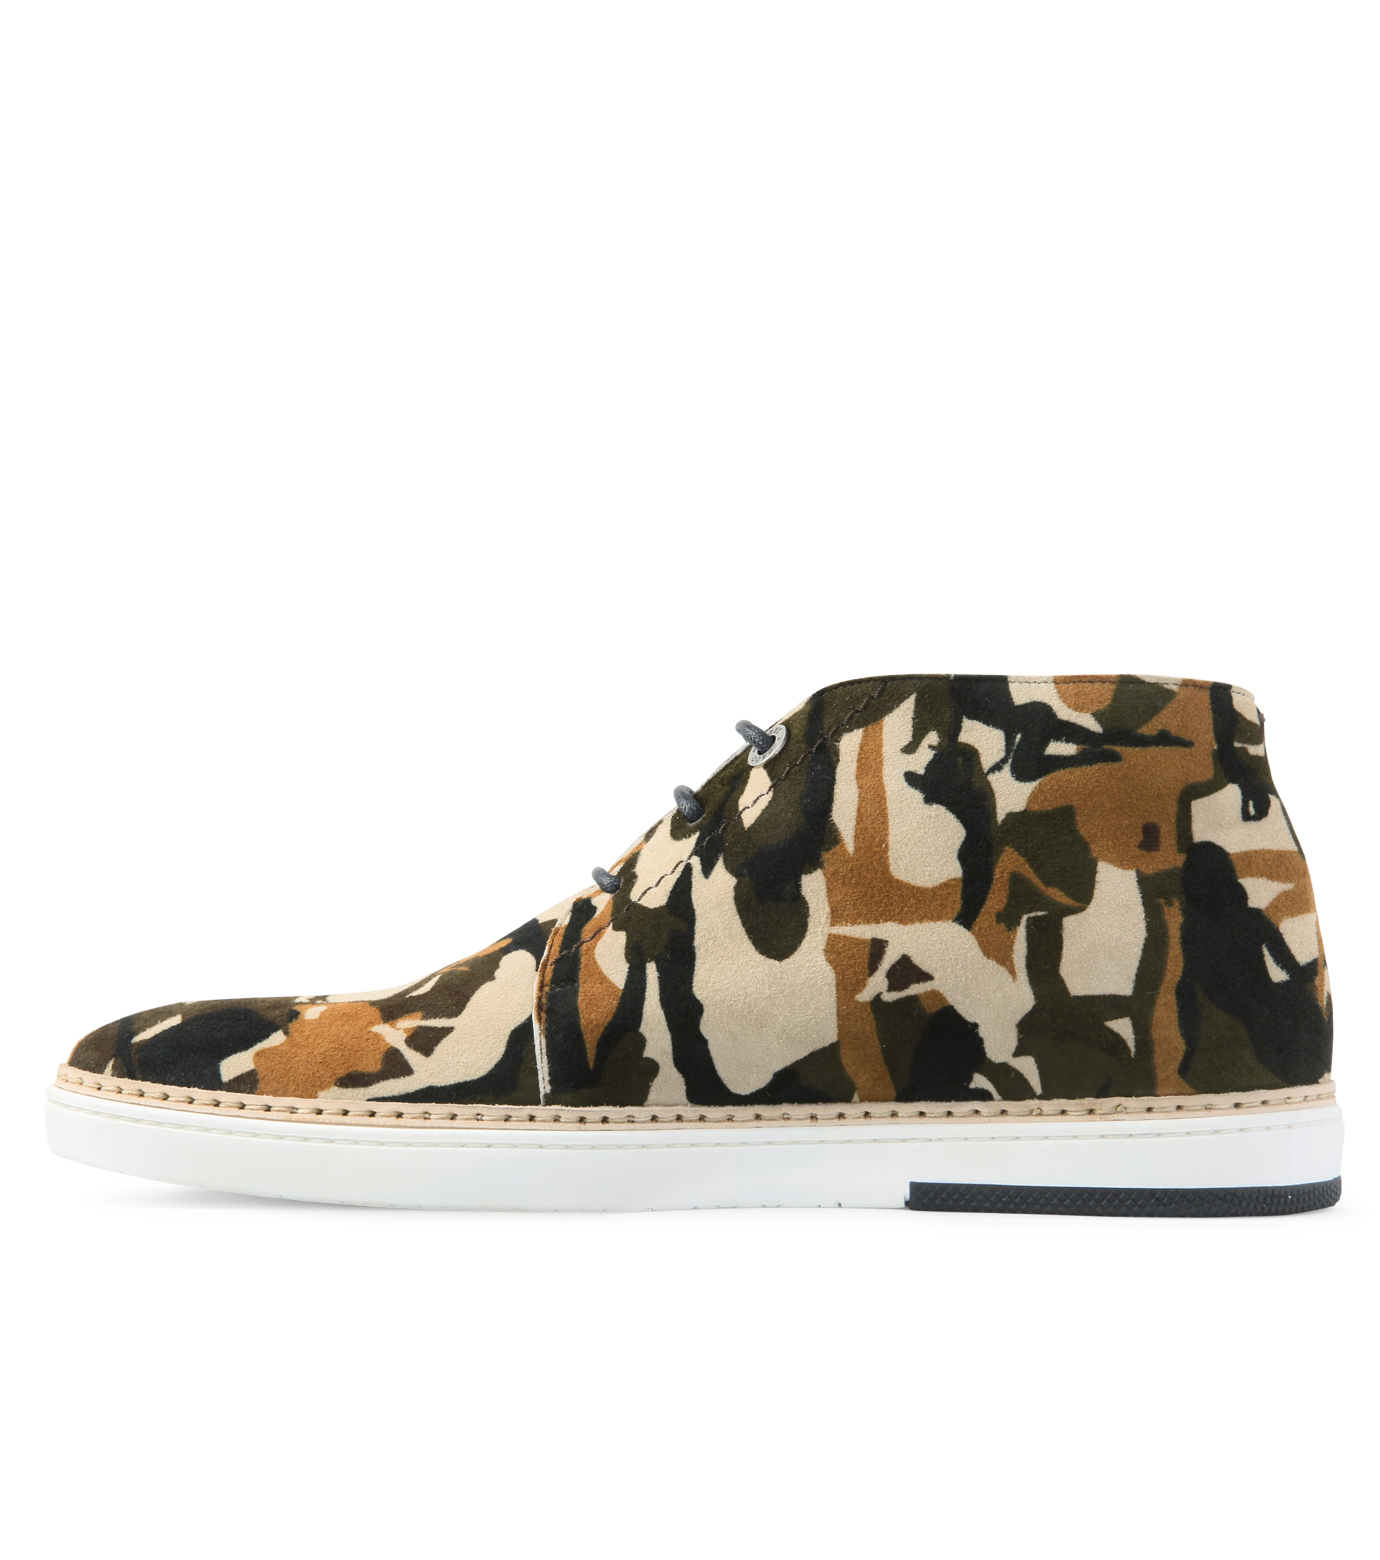 Jimmy Choo(ジミーチュウ)のCamo print desert boots-LIGHT BROWN-DRAKE-CPD-41 拡大詳細画像2